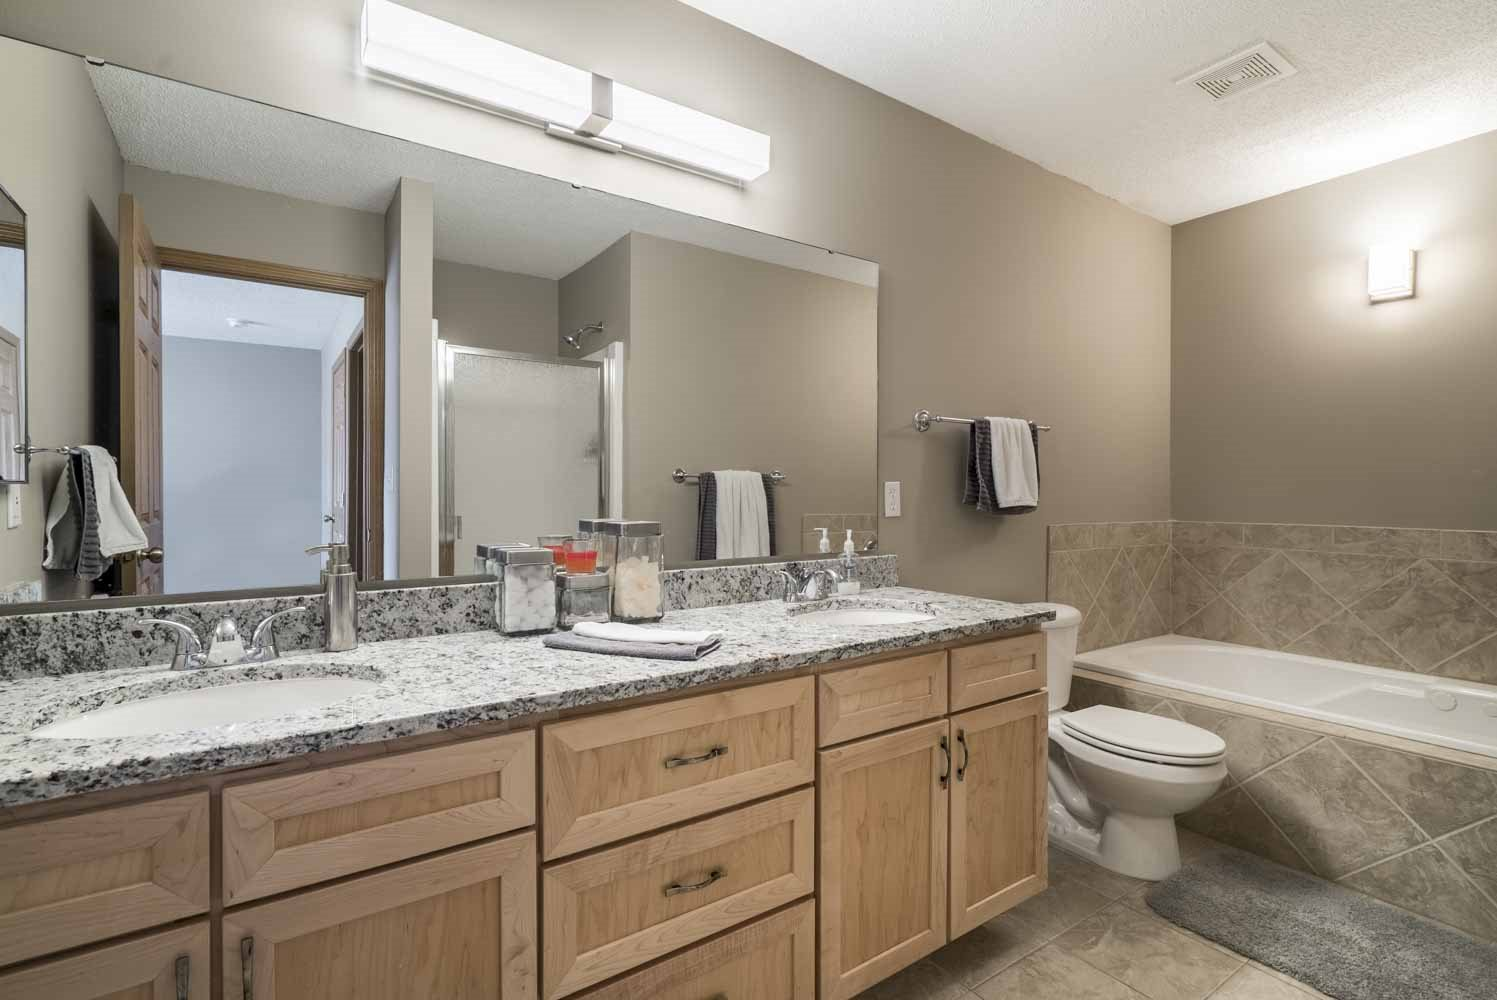 Master bath with soaking tub at Southwind Villas in southwest Omaha in La Vista, NE, 68128